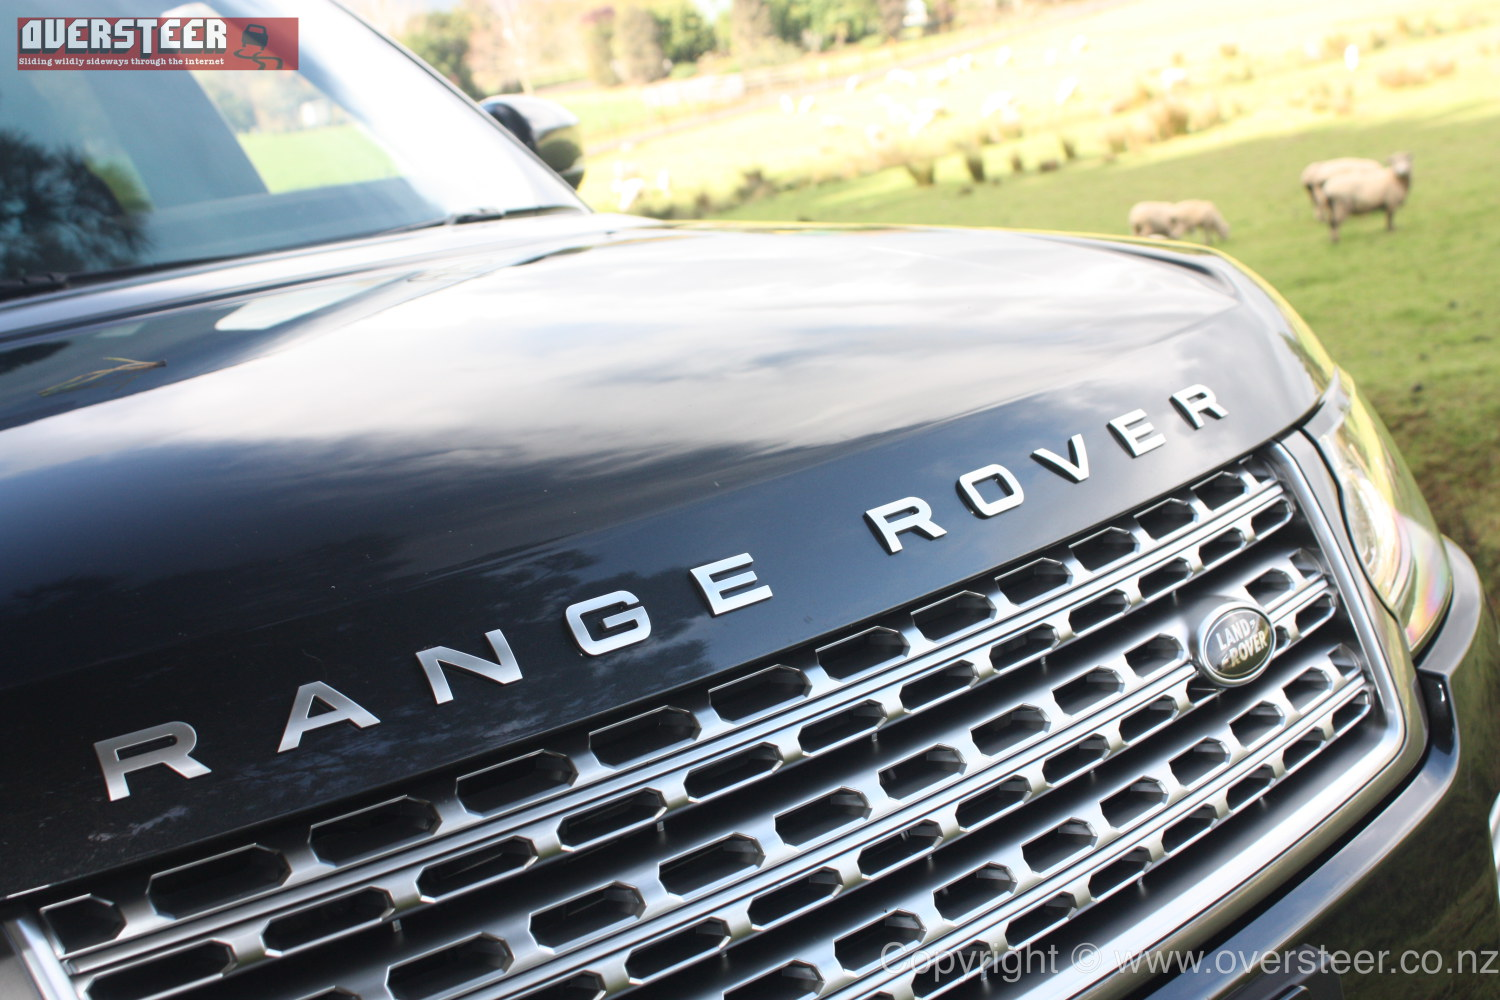 ROAD TEST: Range Rover Vogue S/C V8